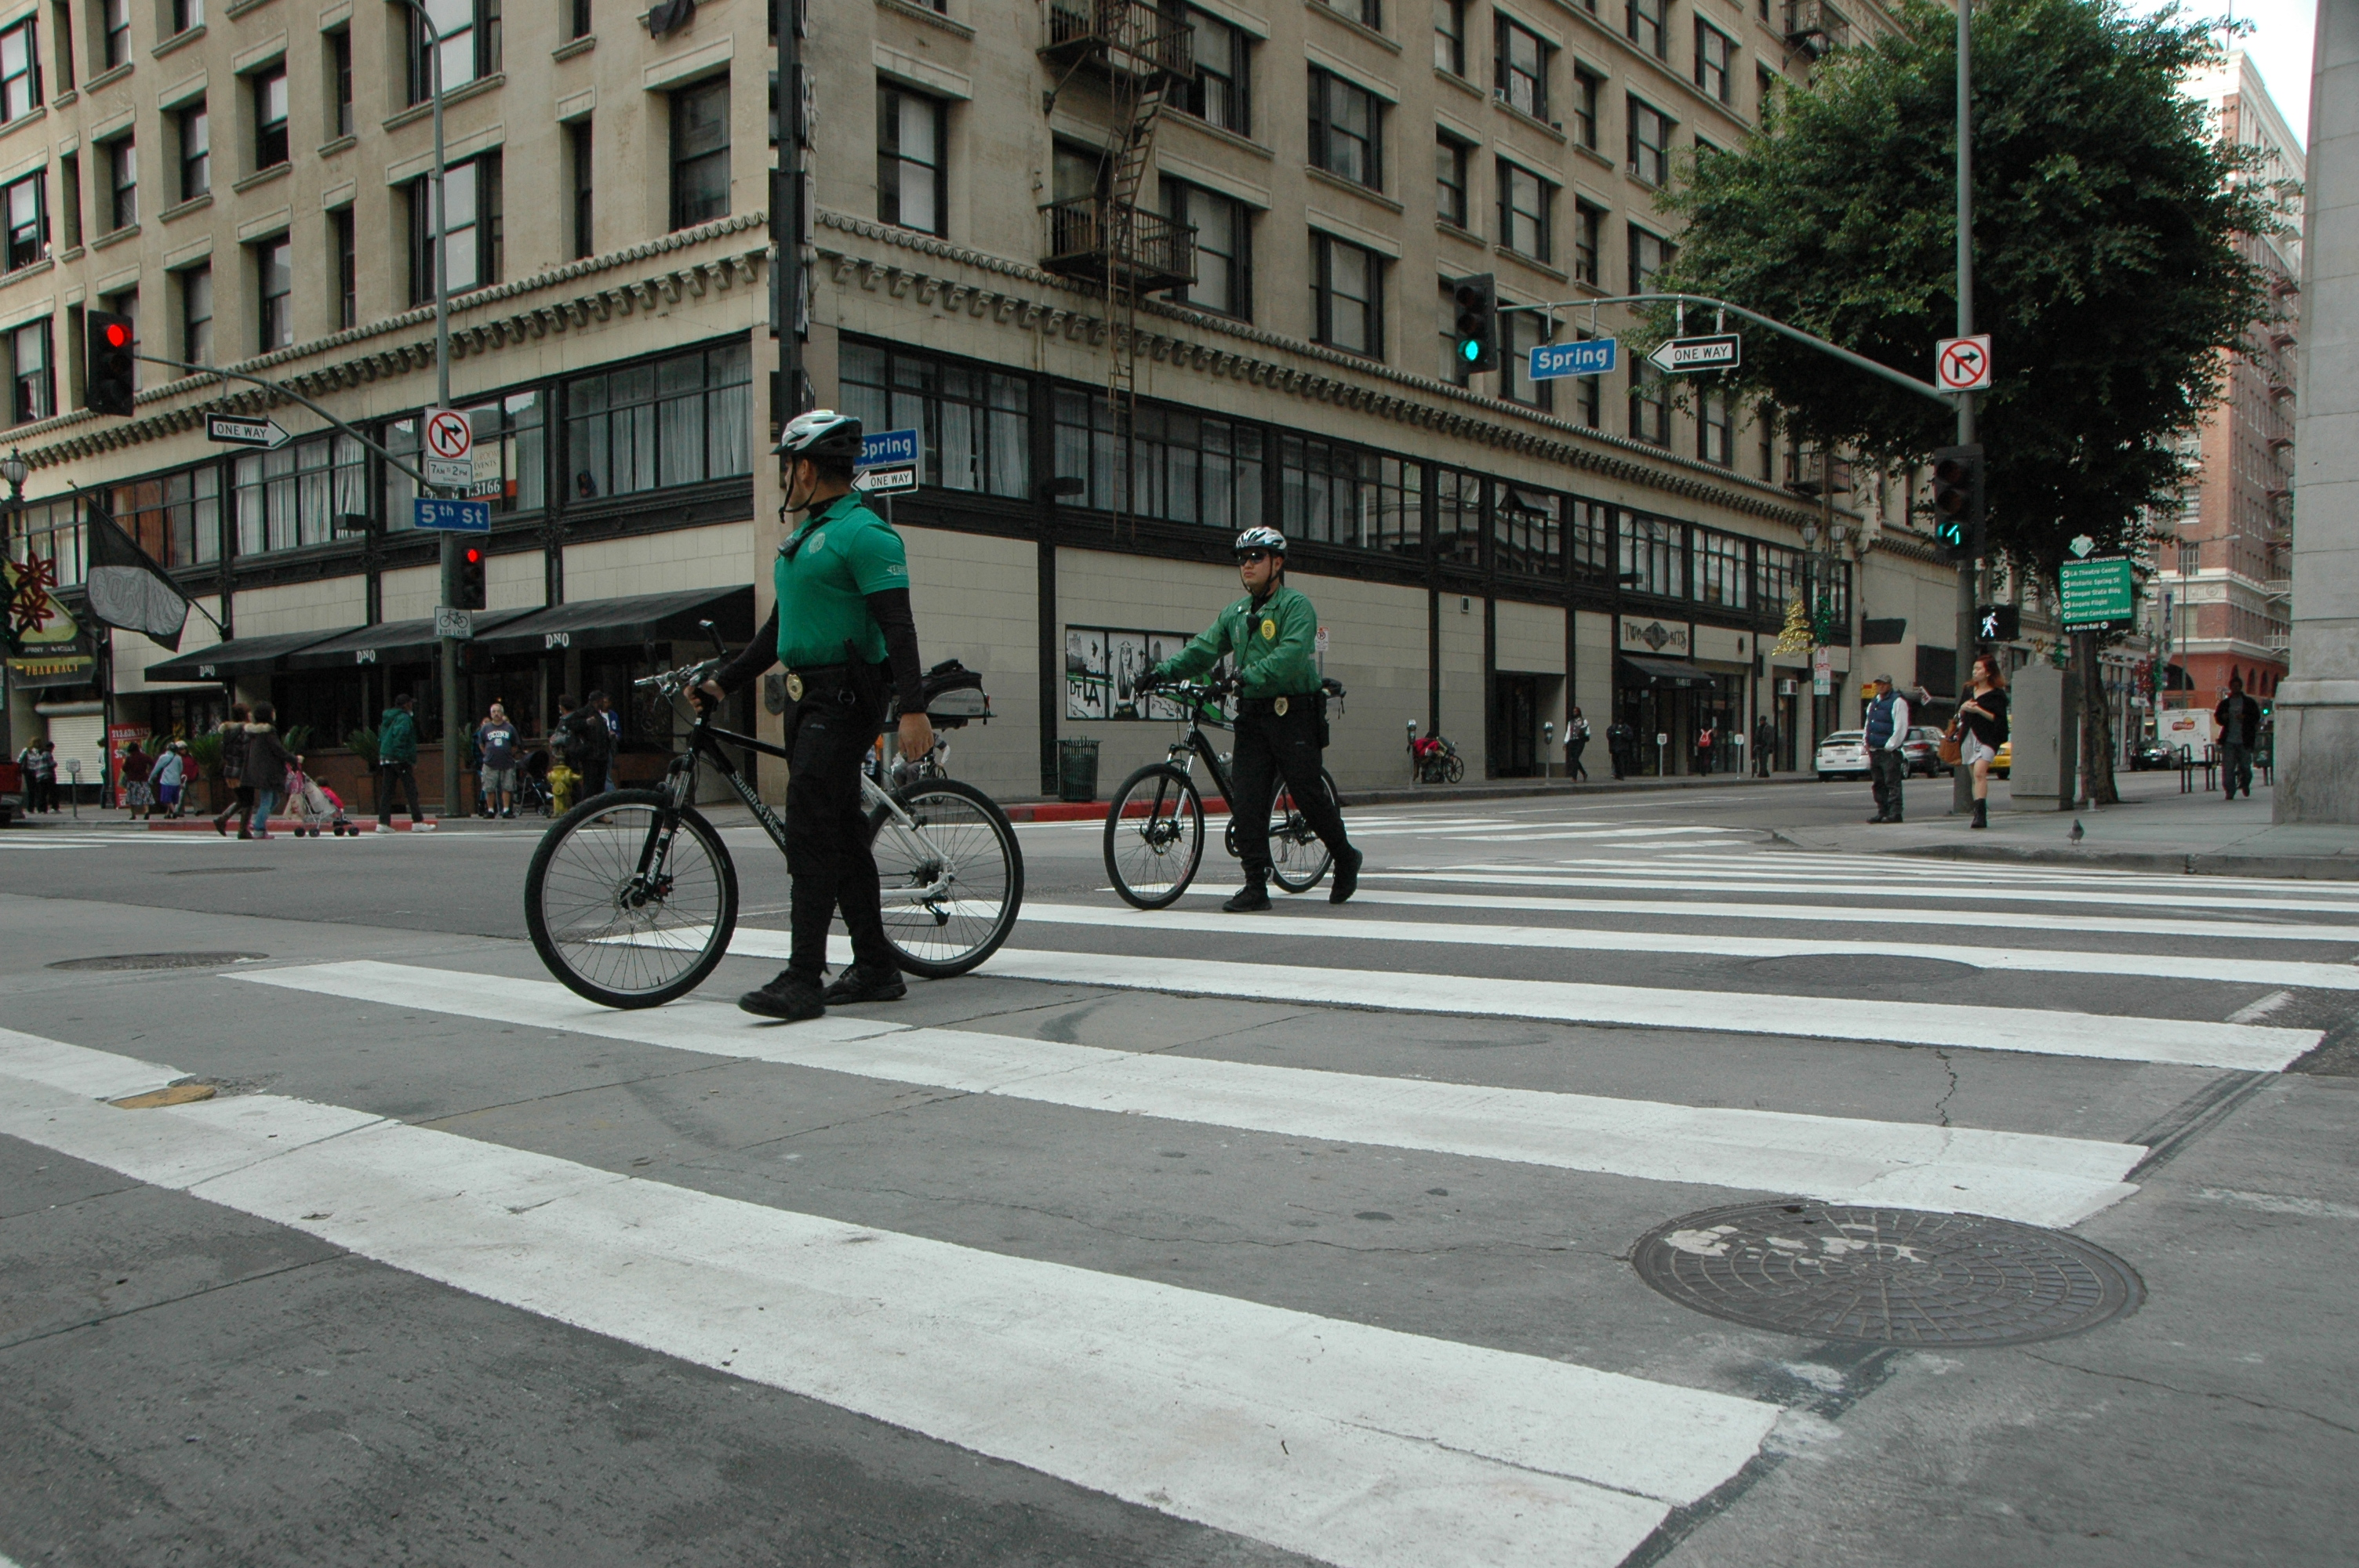 DTLA Bike Patrol officers demonstrate how to properly cross a crosswalk with a bike. Photo by Jose Ubaldo/Metro